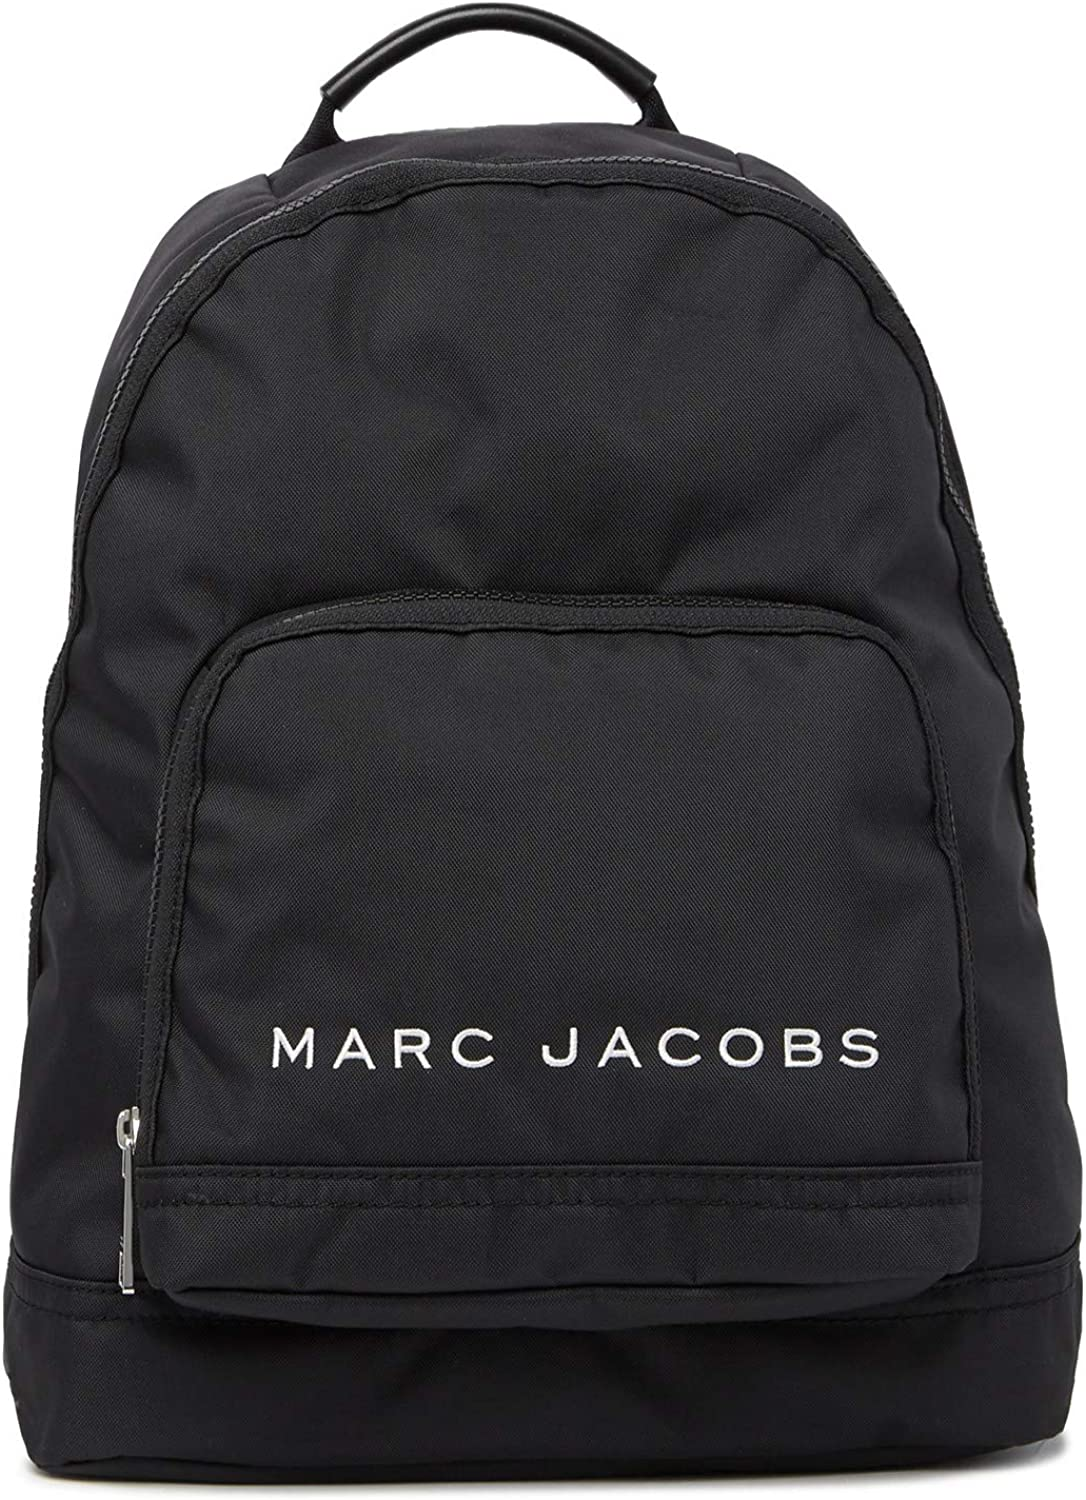 Marc Jacobs All Star Backpack (Black)